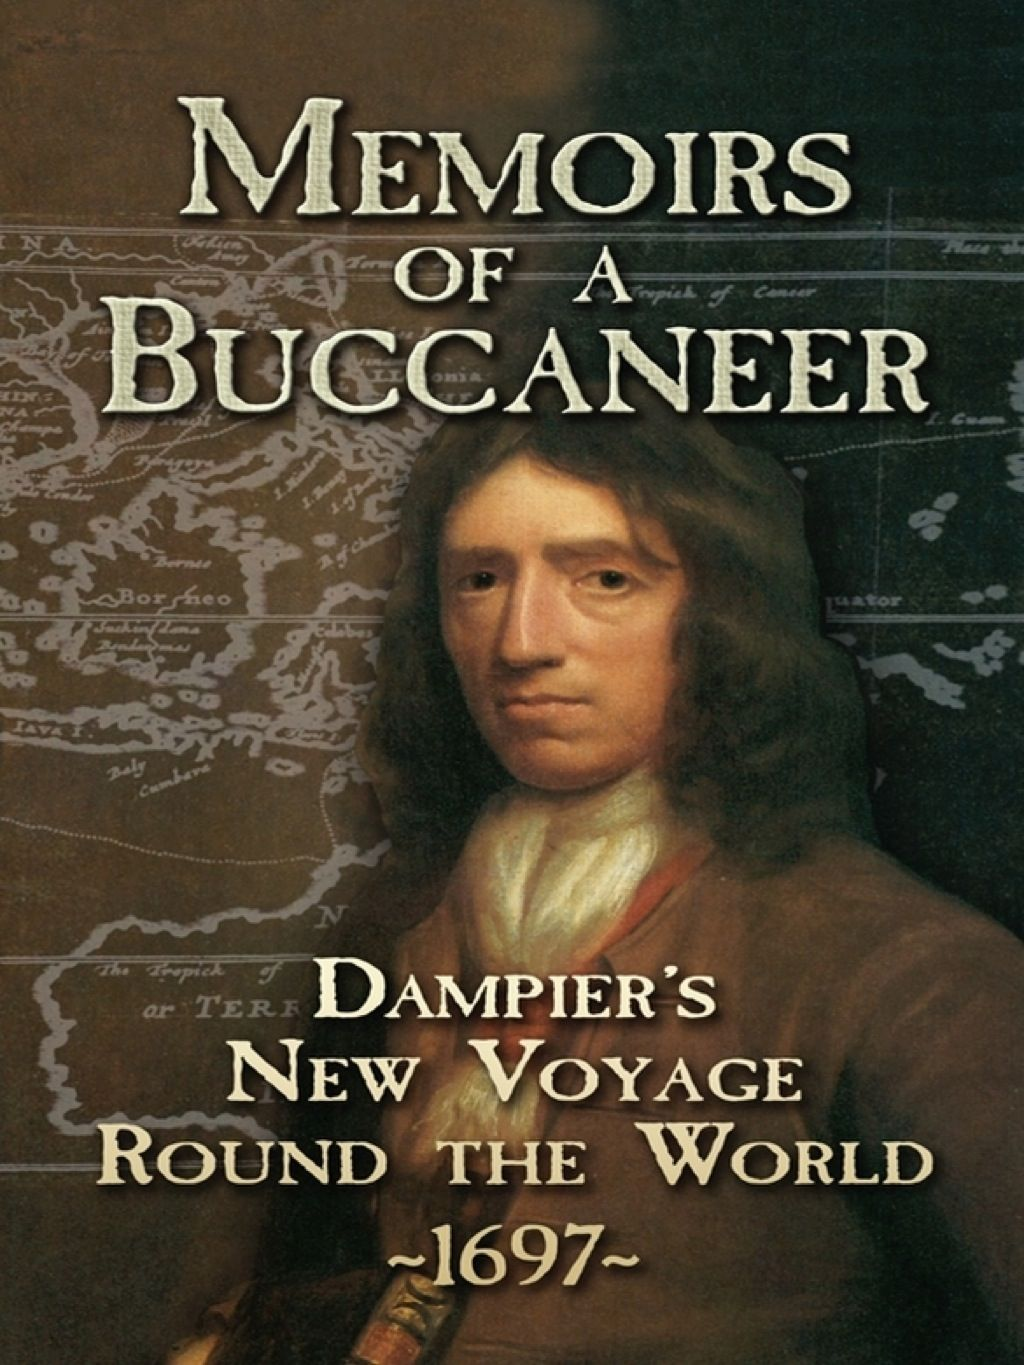 Memoirs of a Buccaneer by William Dampier book cover